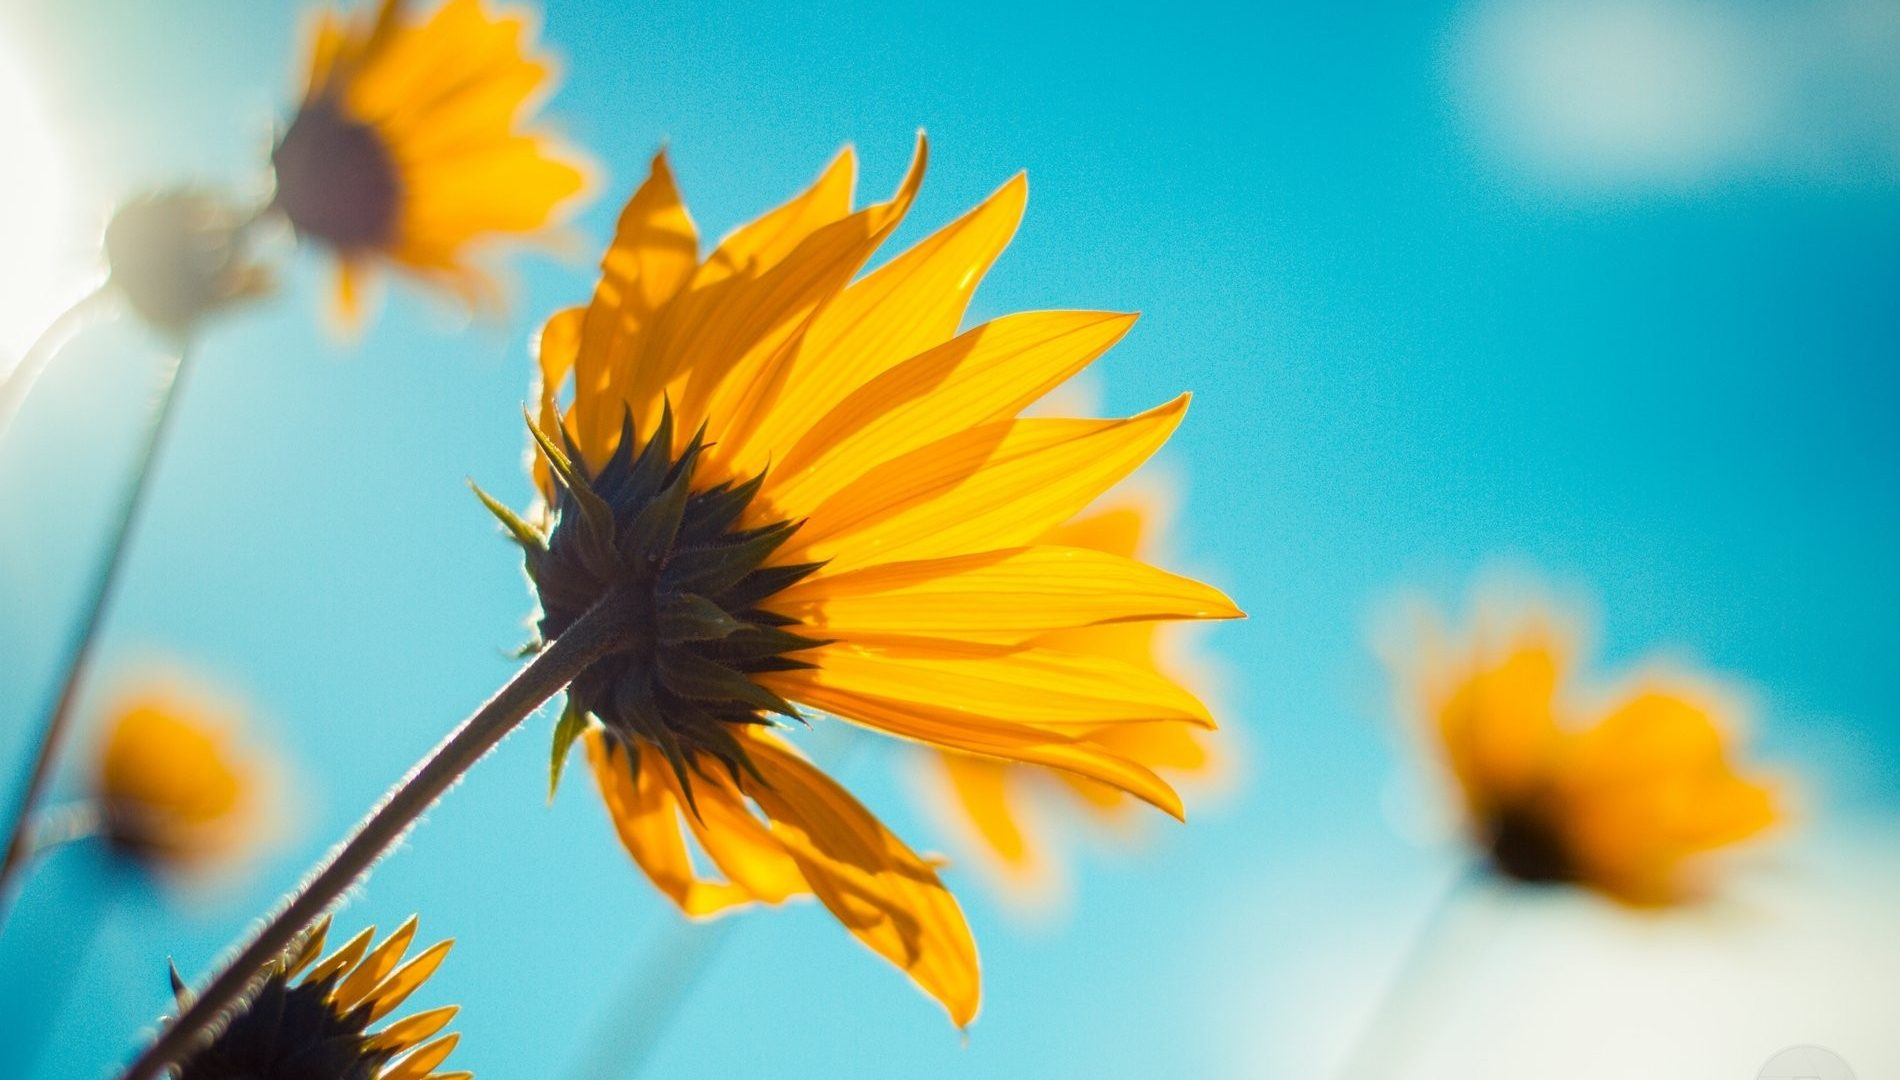 Sky Sunshine Happiness Flower Blue 3d Wallpapers Hd Nature